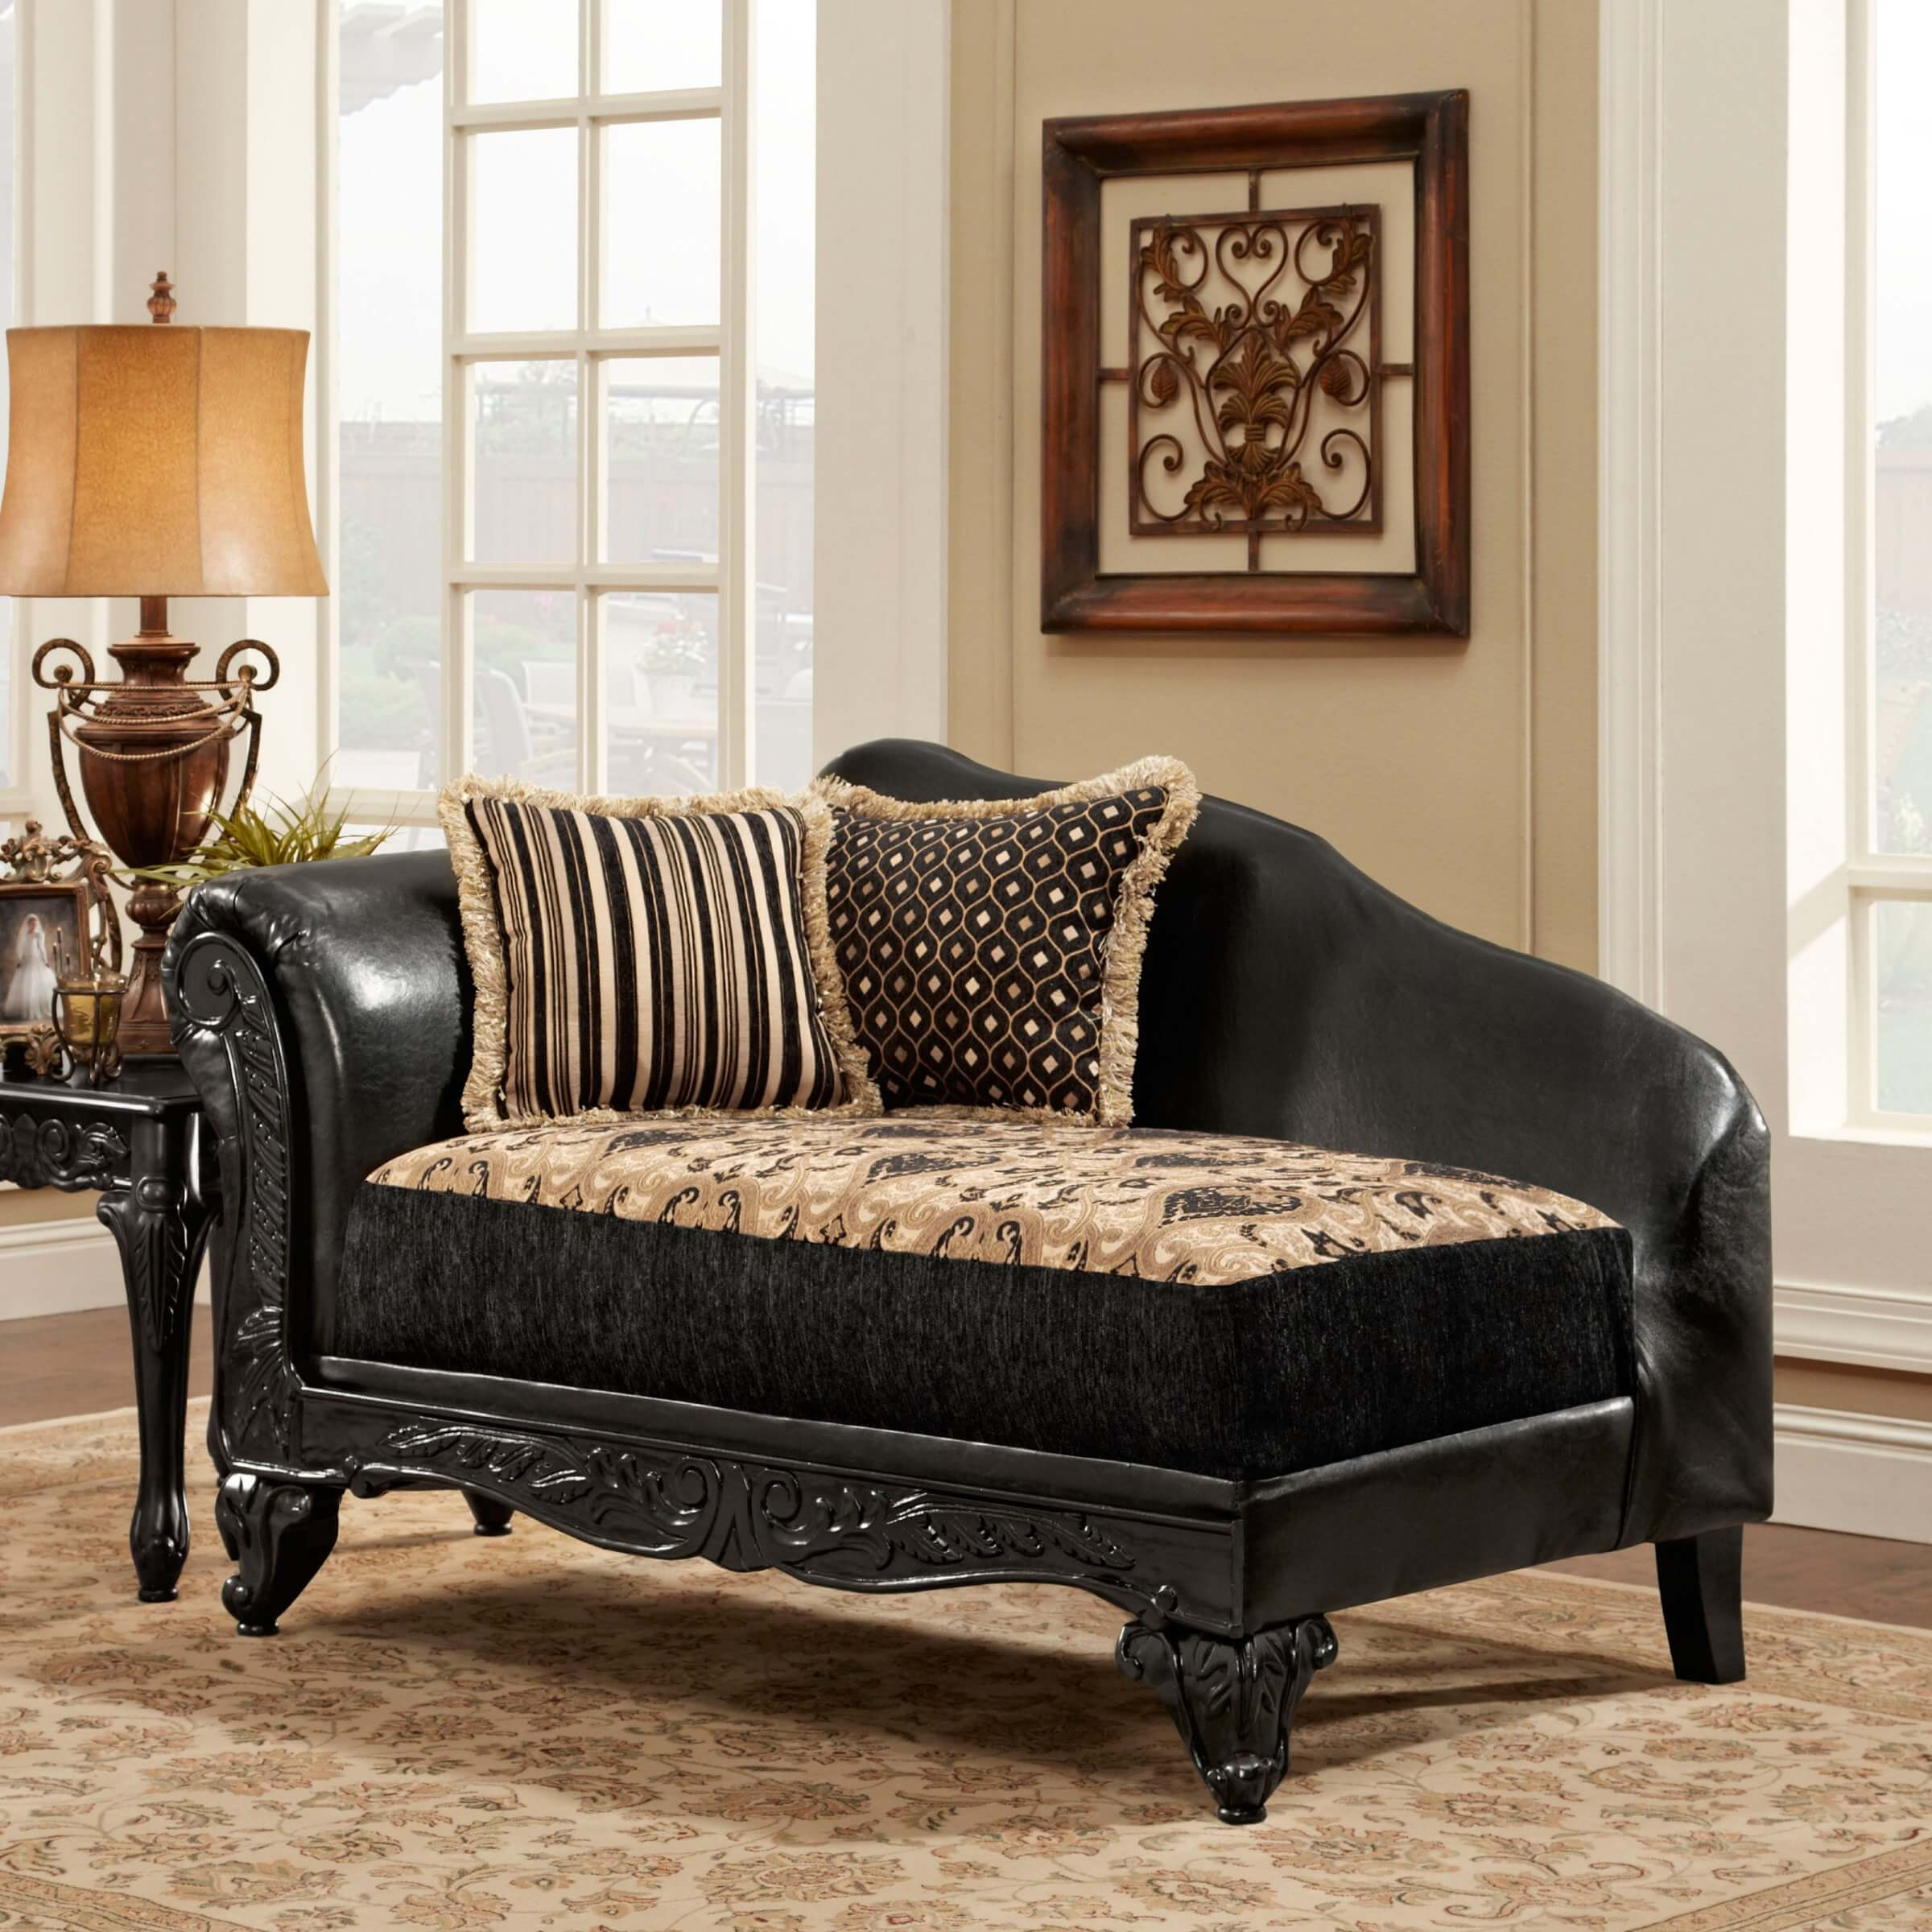 buy indoor chaise lounge top 20 types of black chaise lounges buying guide home 11866 | 9black chaise lounge